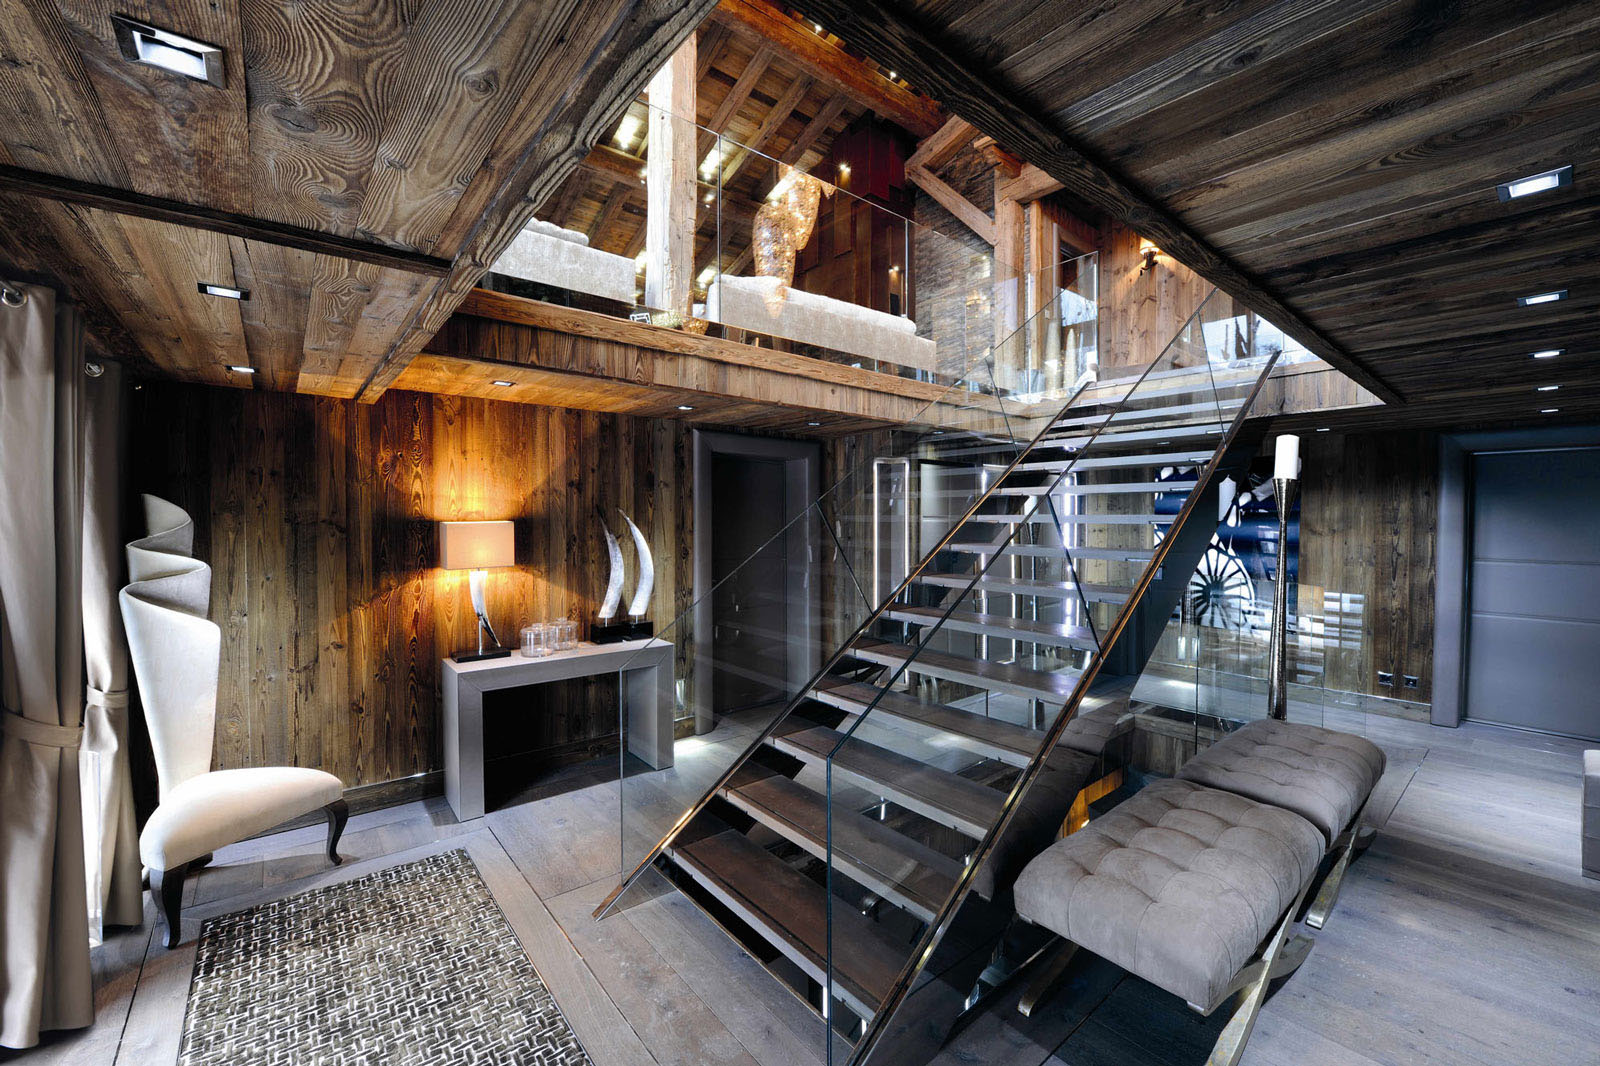 Chic modern rustic chalet in the rh ne alpes idesignarch for Rustic style interior